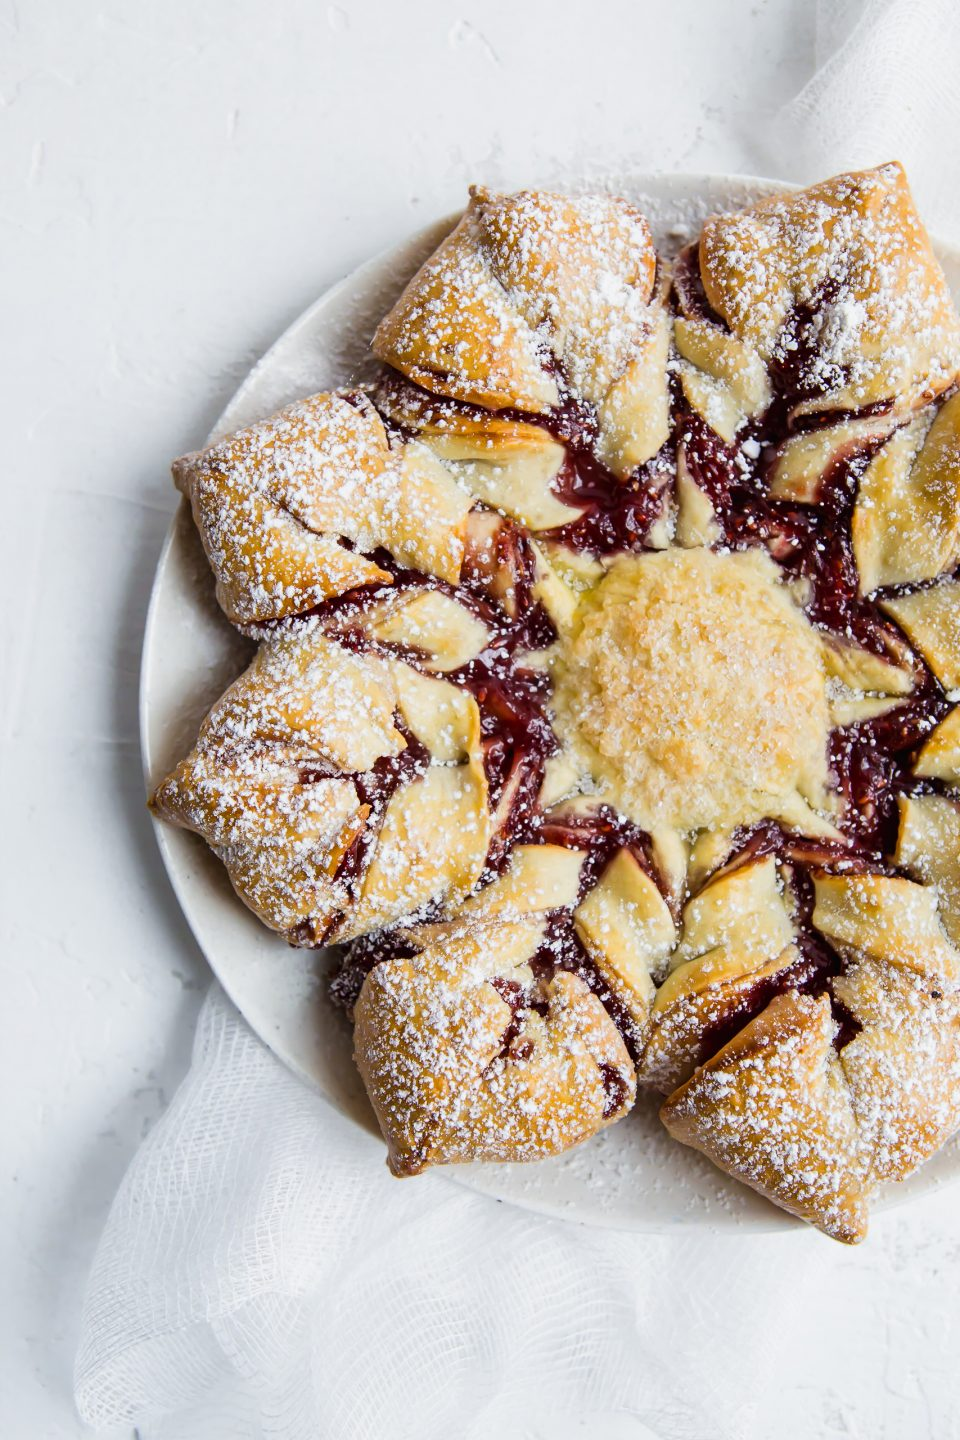 Overhead photograph of a raspberry filled pastry shaped like a star.